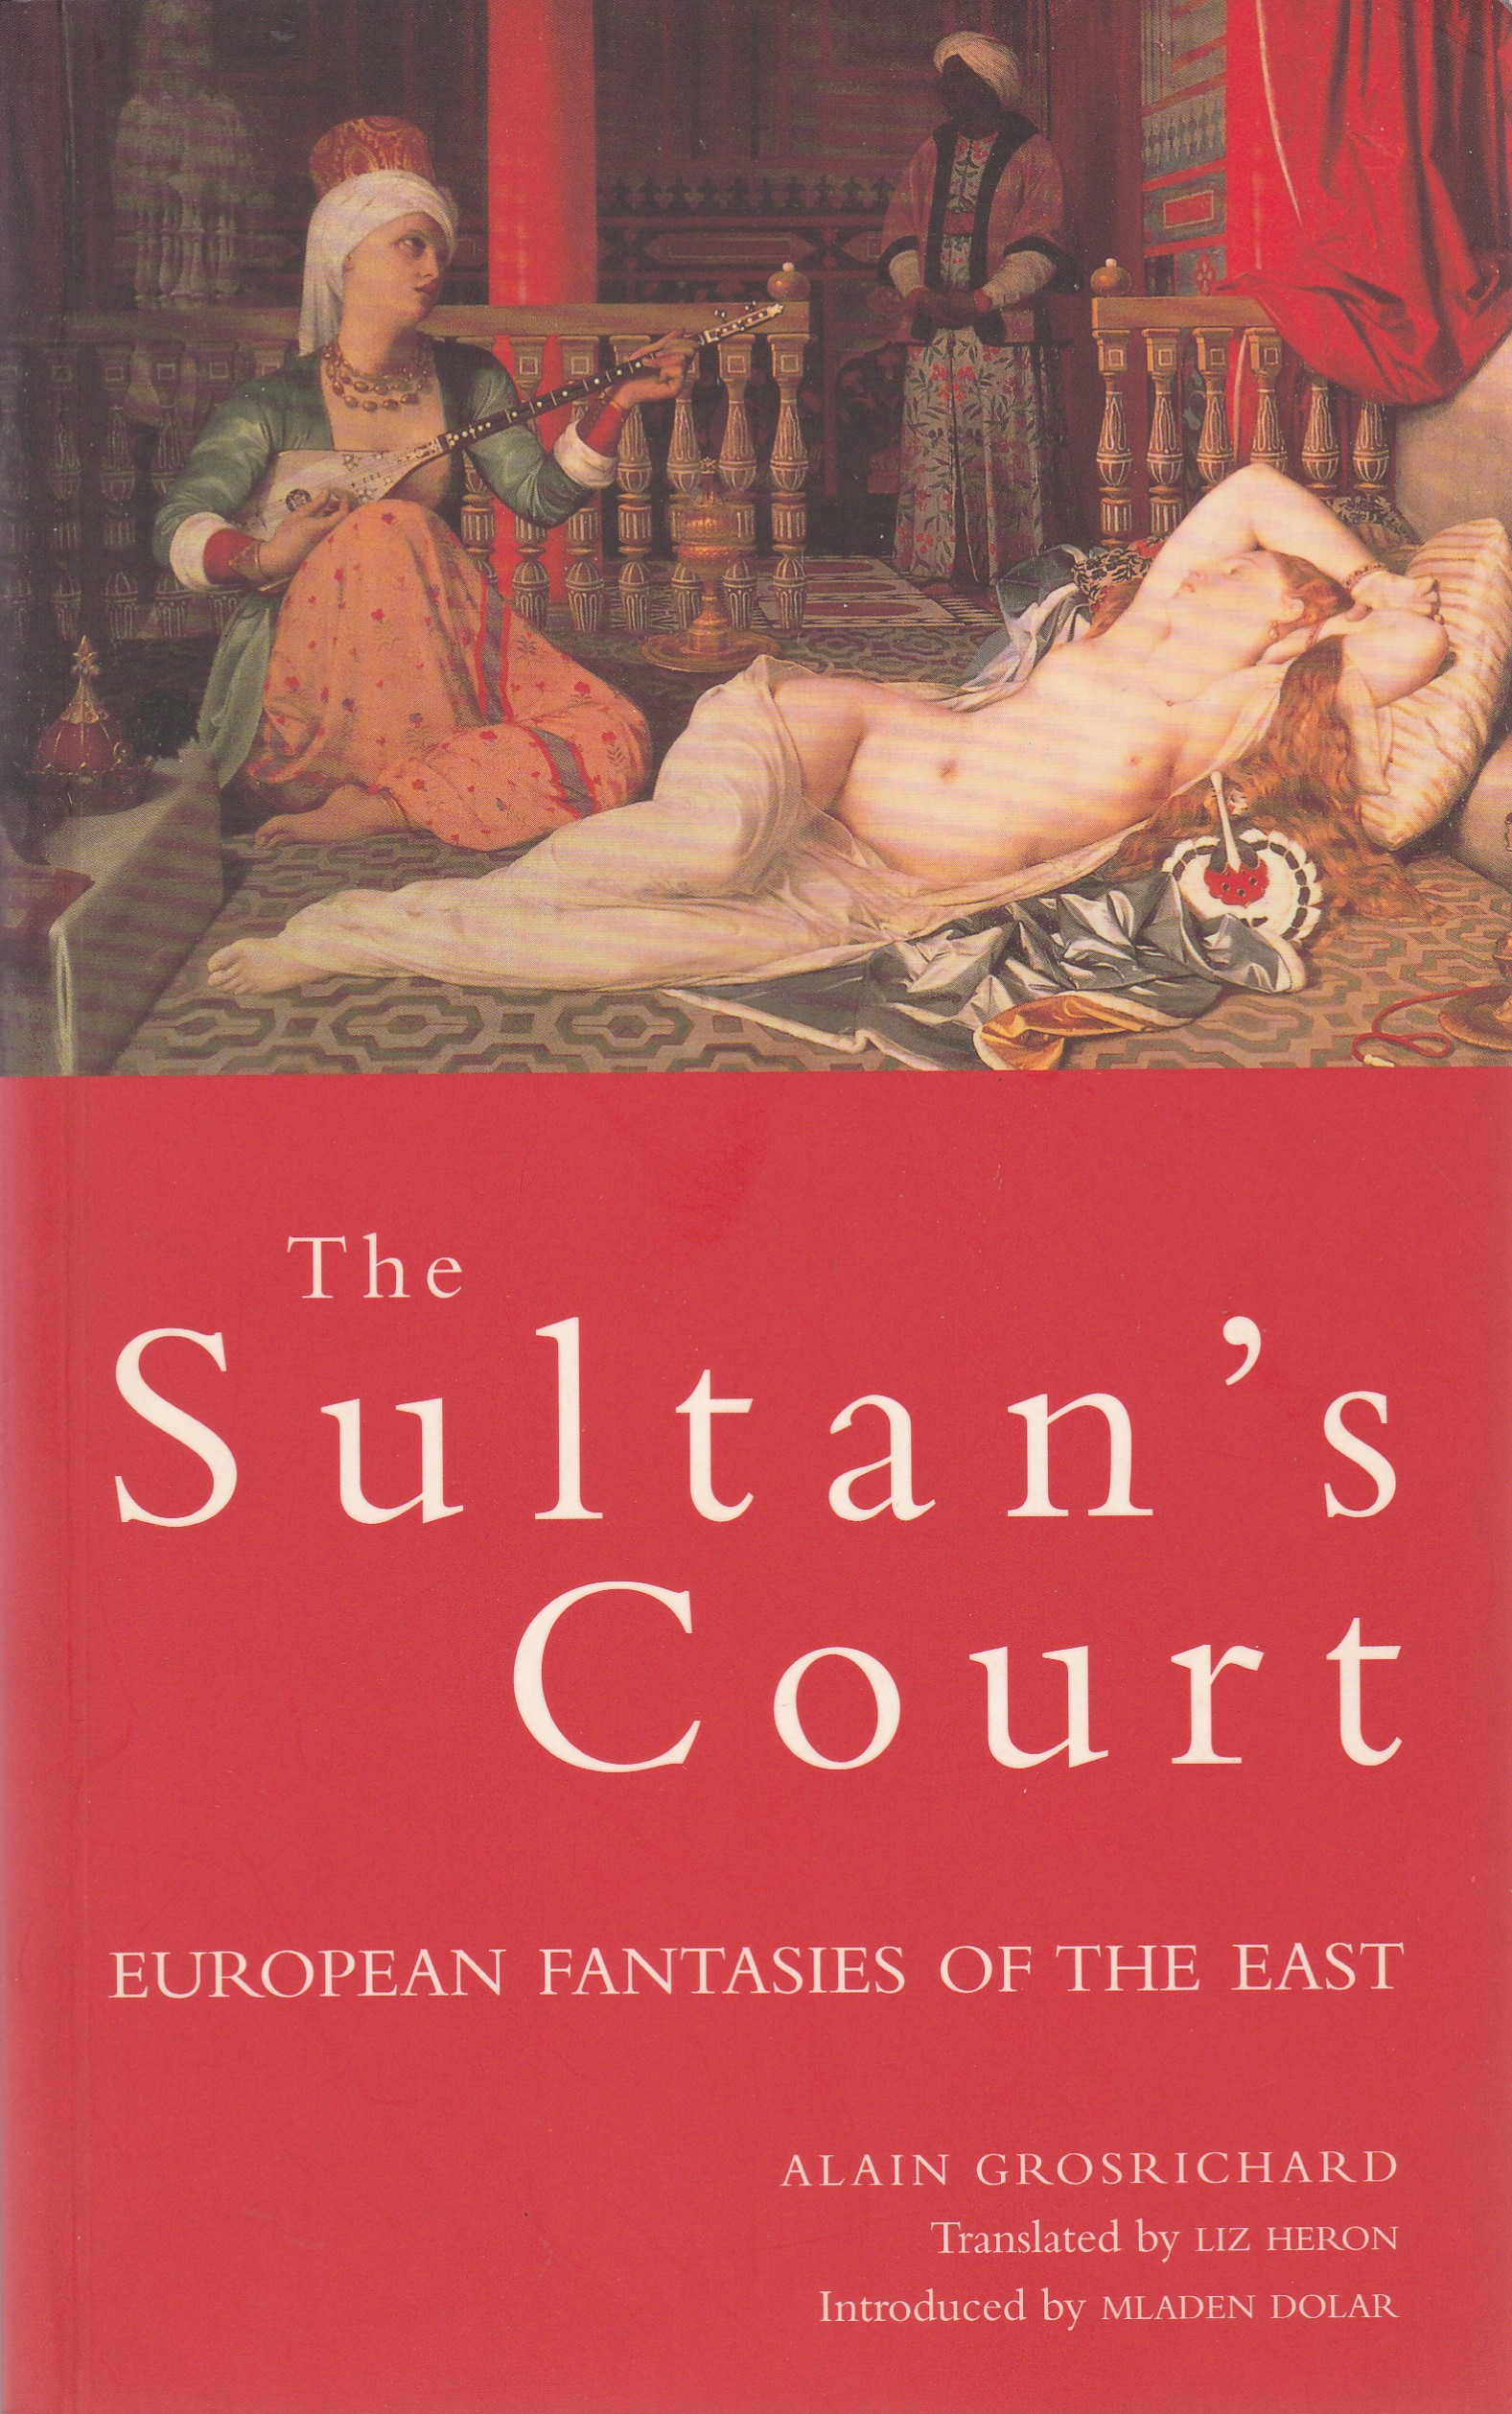 The Sultan's Court